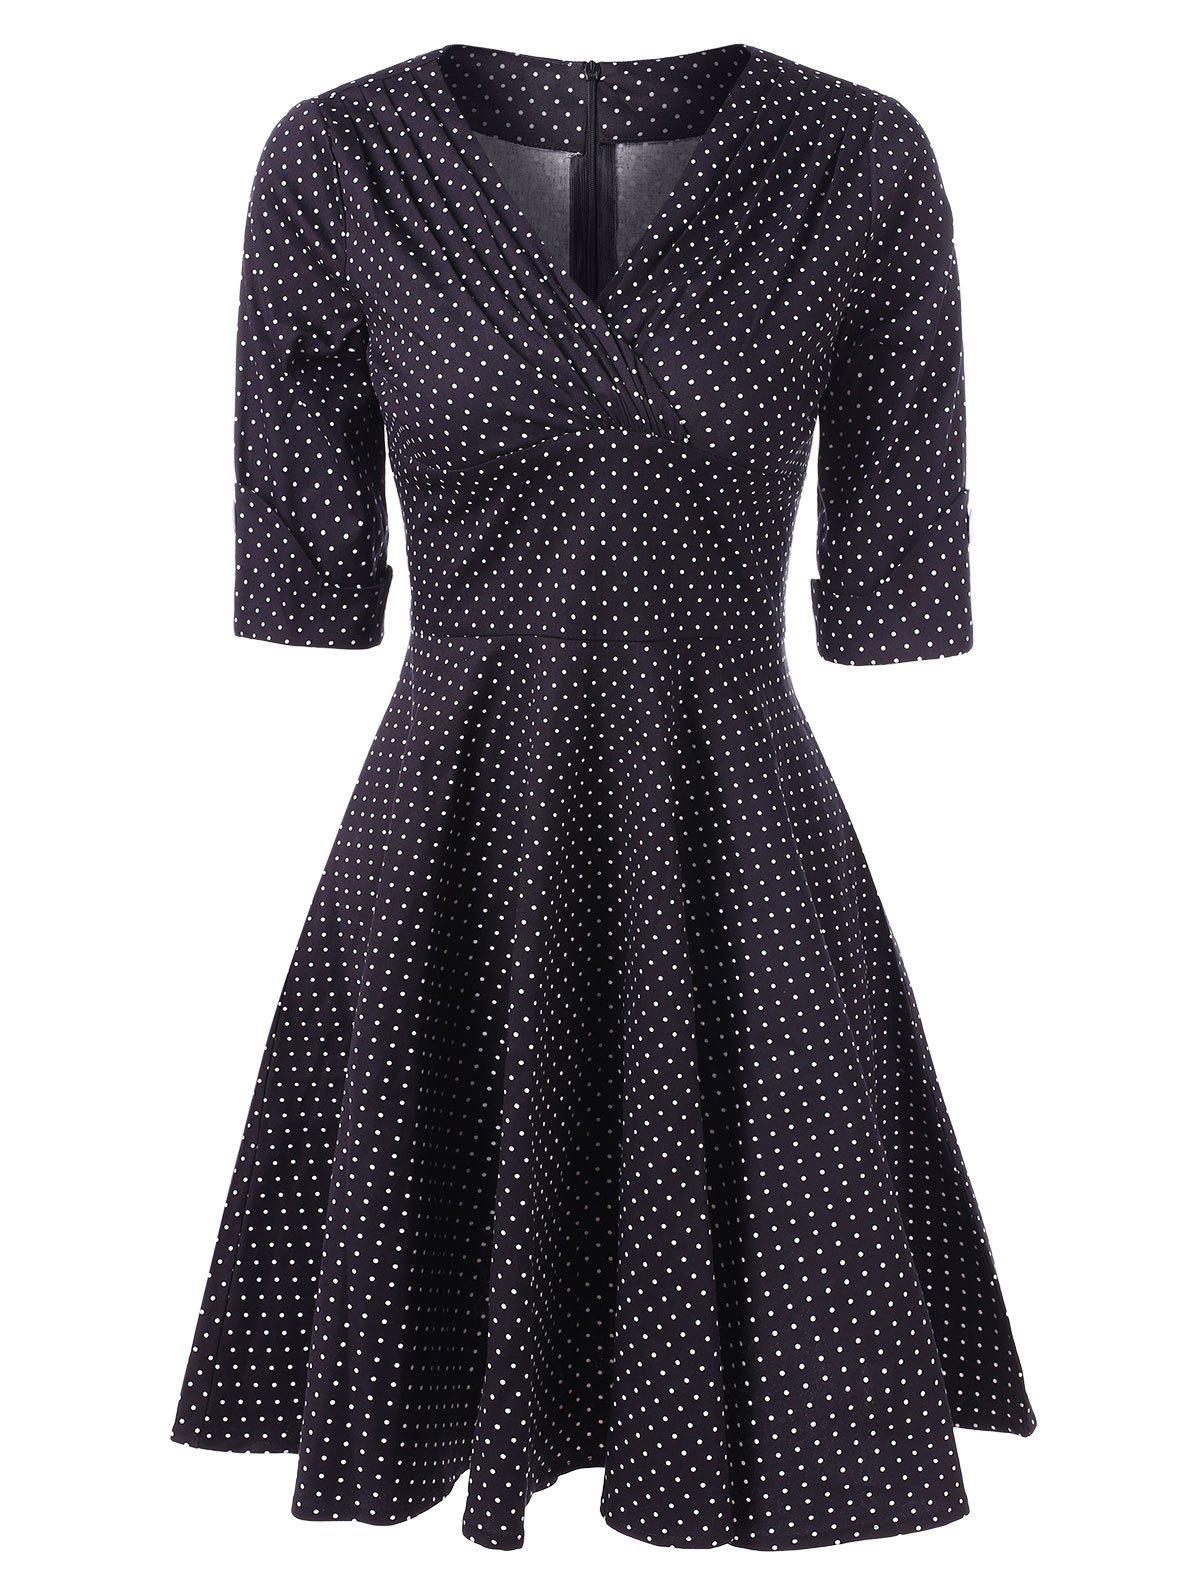 Best Vintage Dotted Pin Up Dress